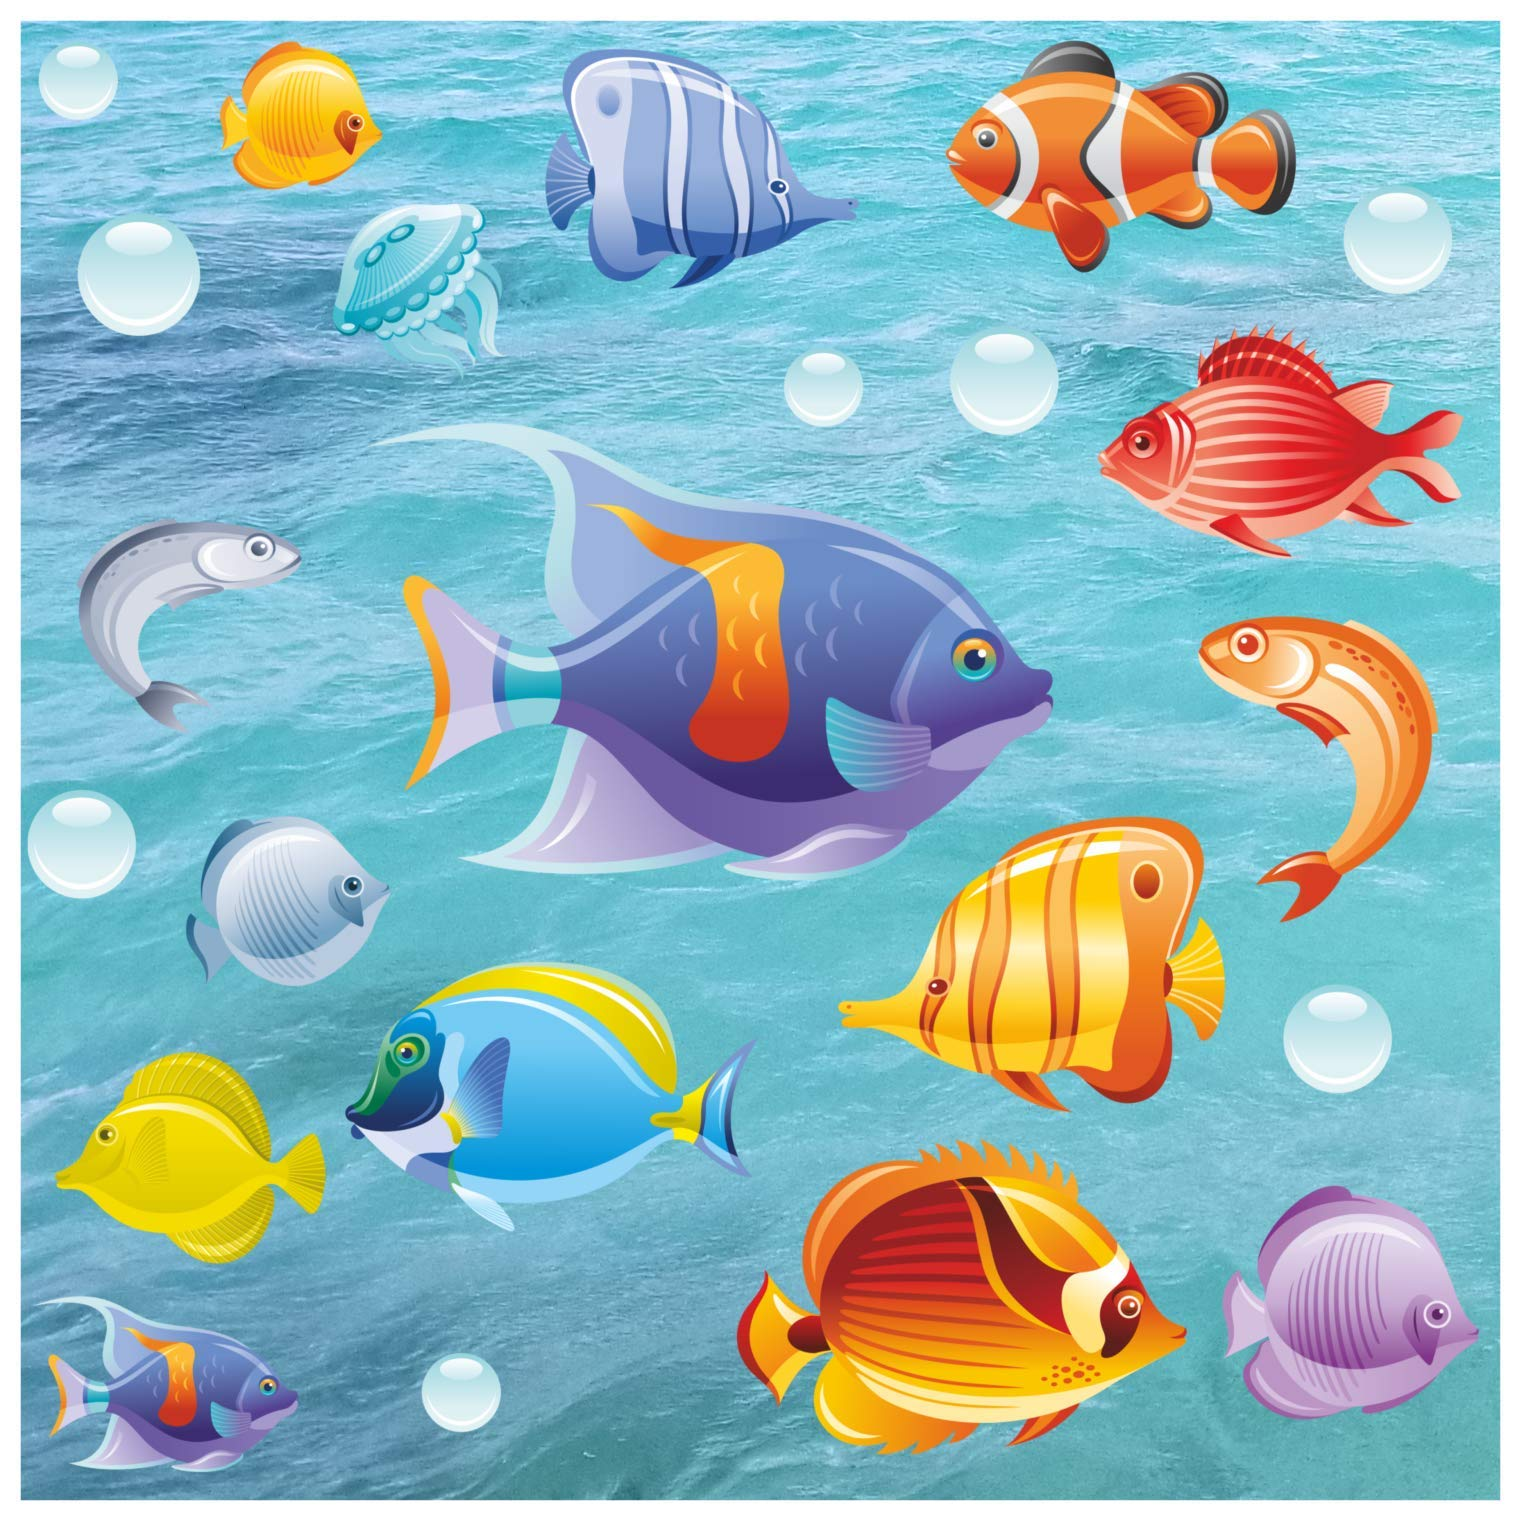 Kids Bathroom Tile - Window - Shower Door or Screen Decorative Tropical Fish Stickers | Double Sided Glass Window clings Removable Colorful Under The sea Collection - No Adhesive Static Cling by Window Flakes